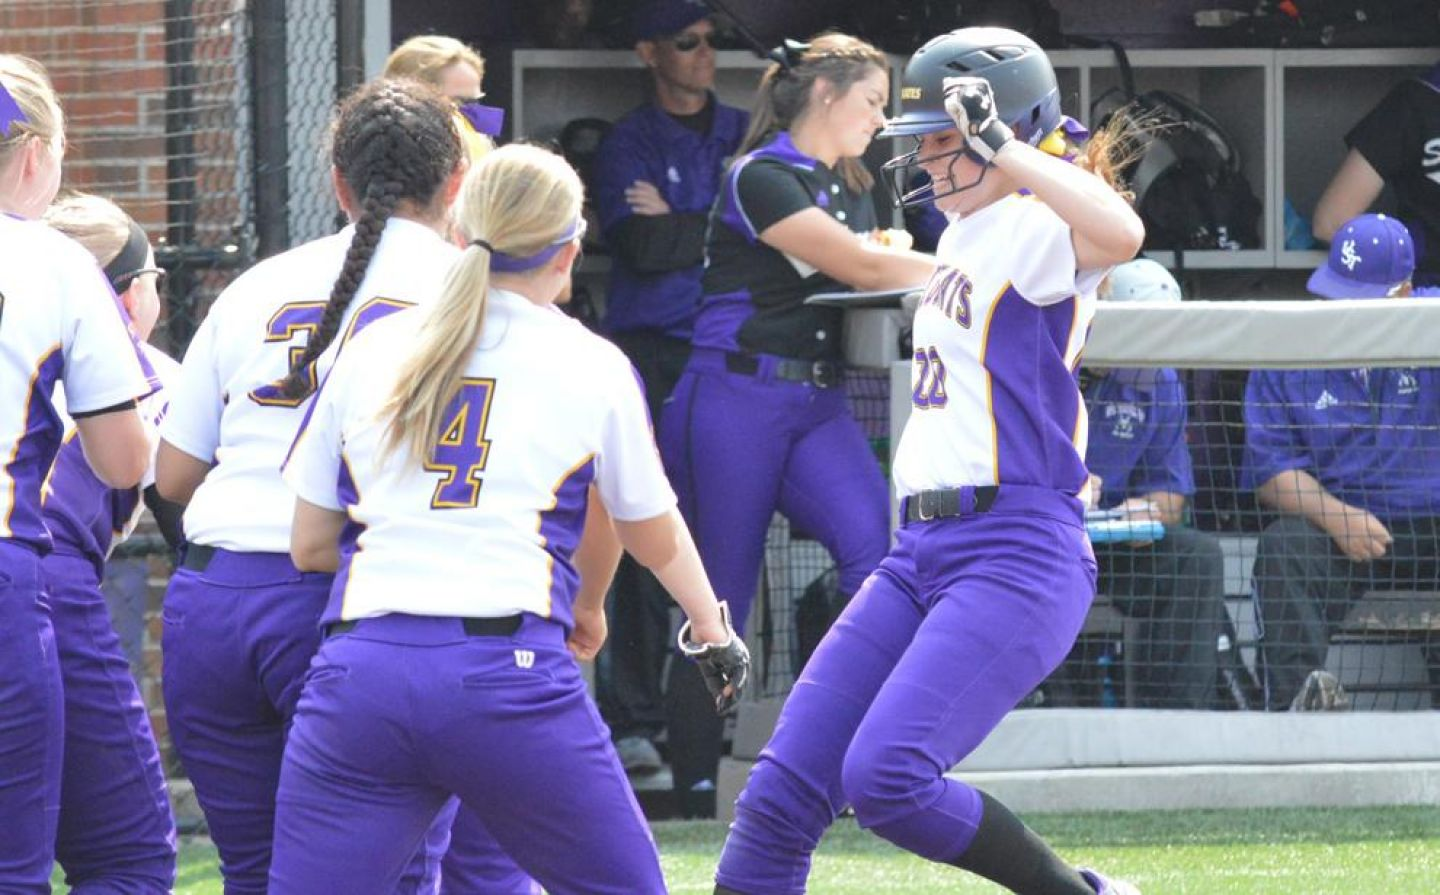 Megan Lindenfelser '18 hits home plate following a home run during the first game against St. Thomas Sunday, May 8, 2016. Photo by Matt Higgins, MIAC.